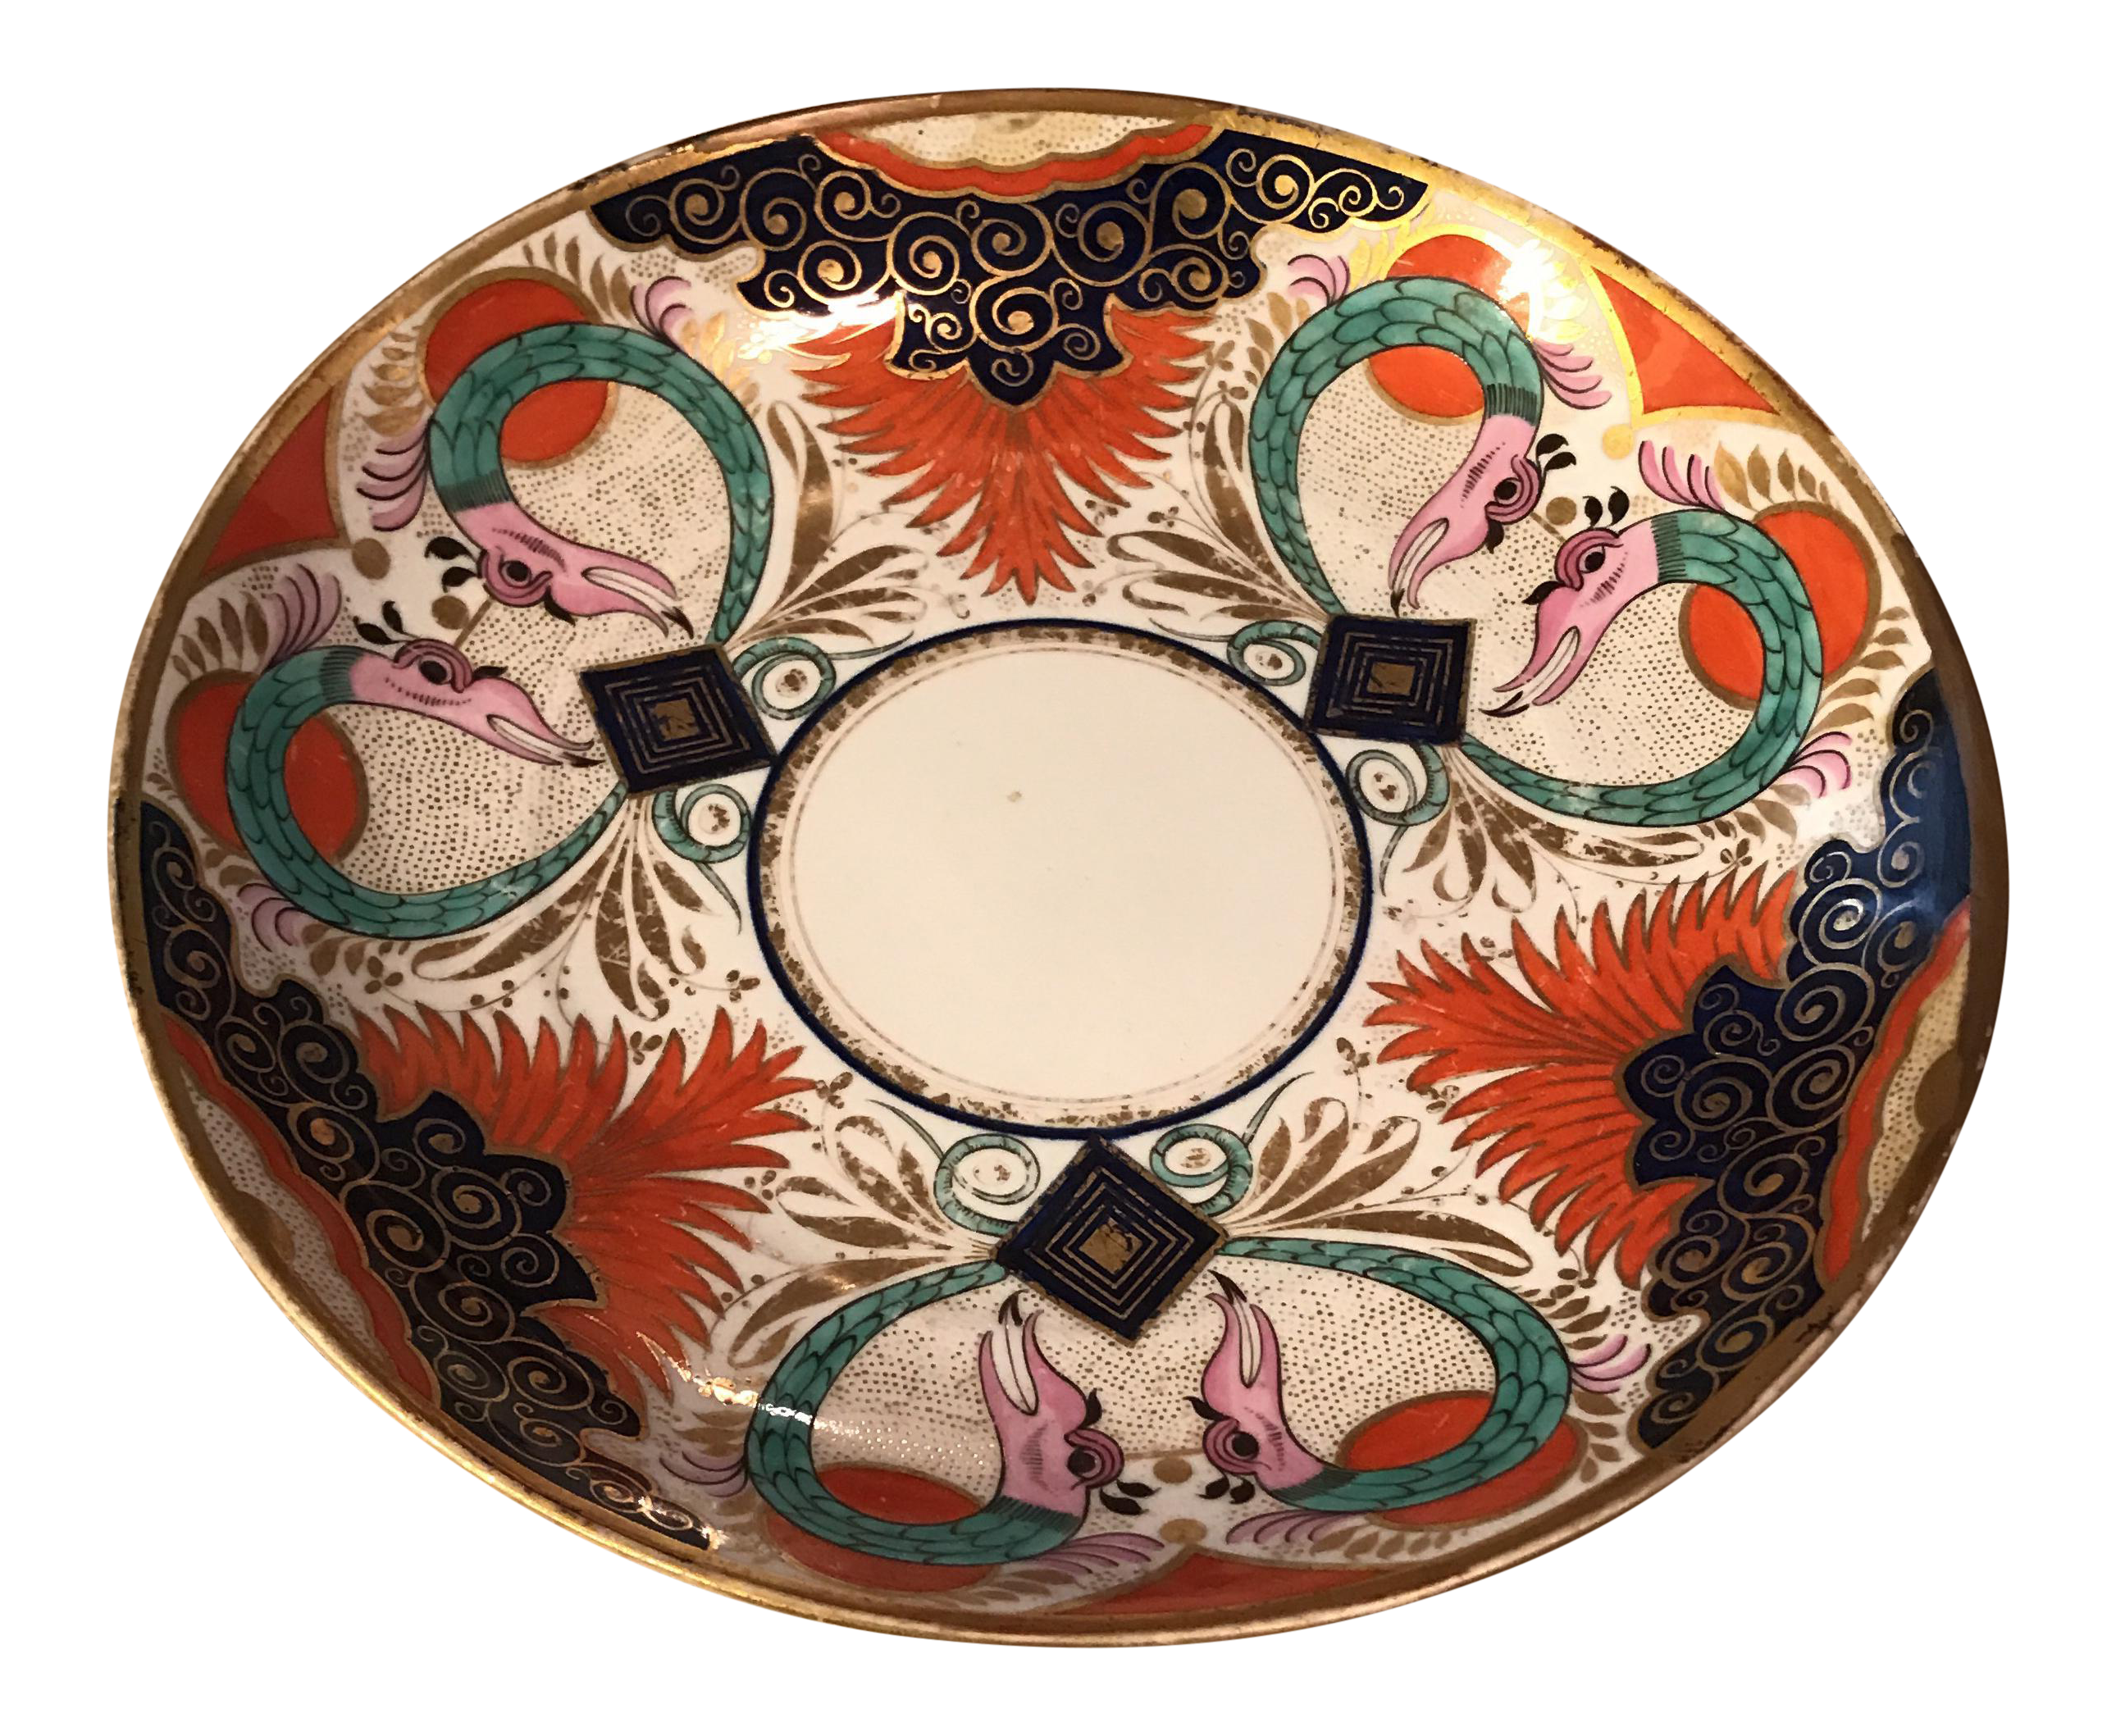 sc 1 st  Pinterest & Gilded Asian Decorative Plate